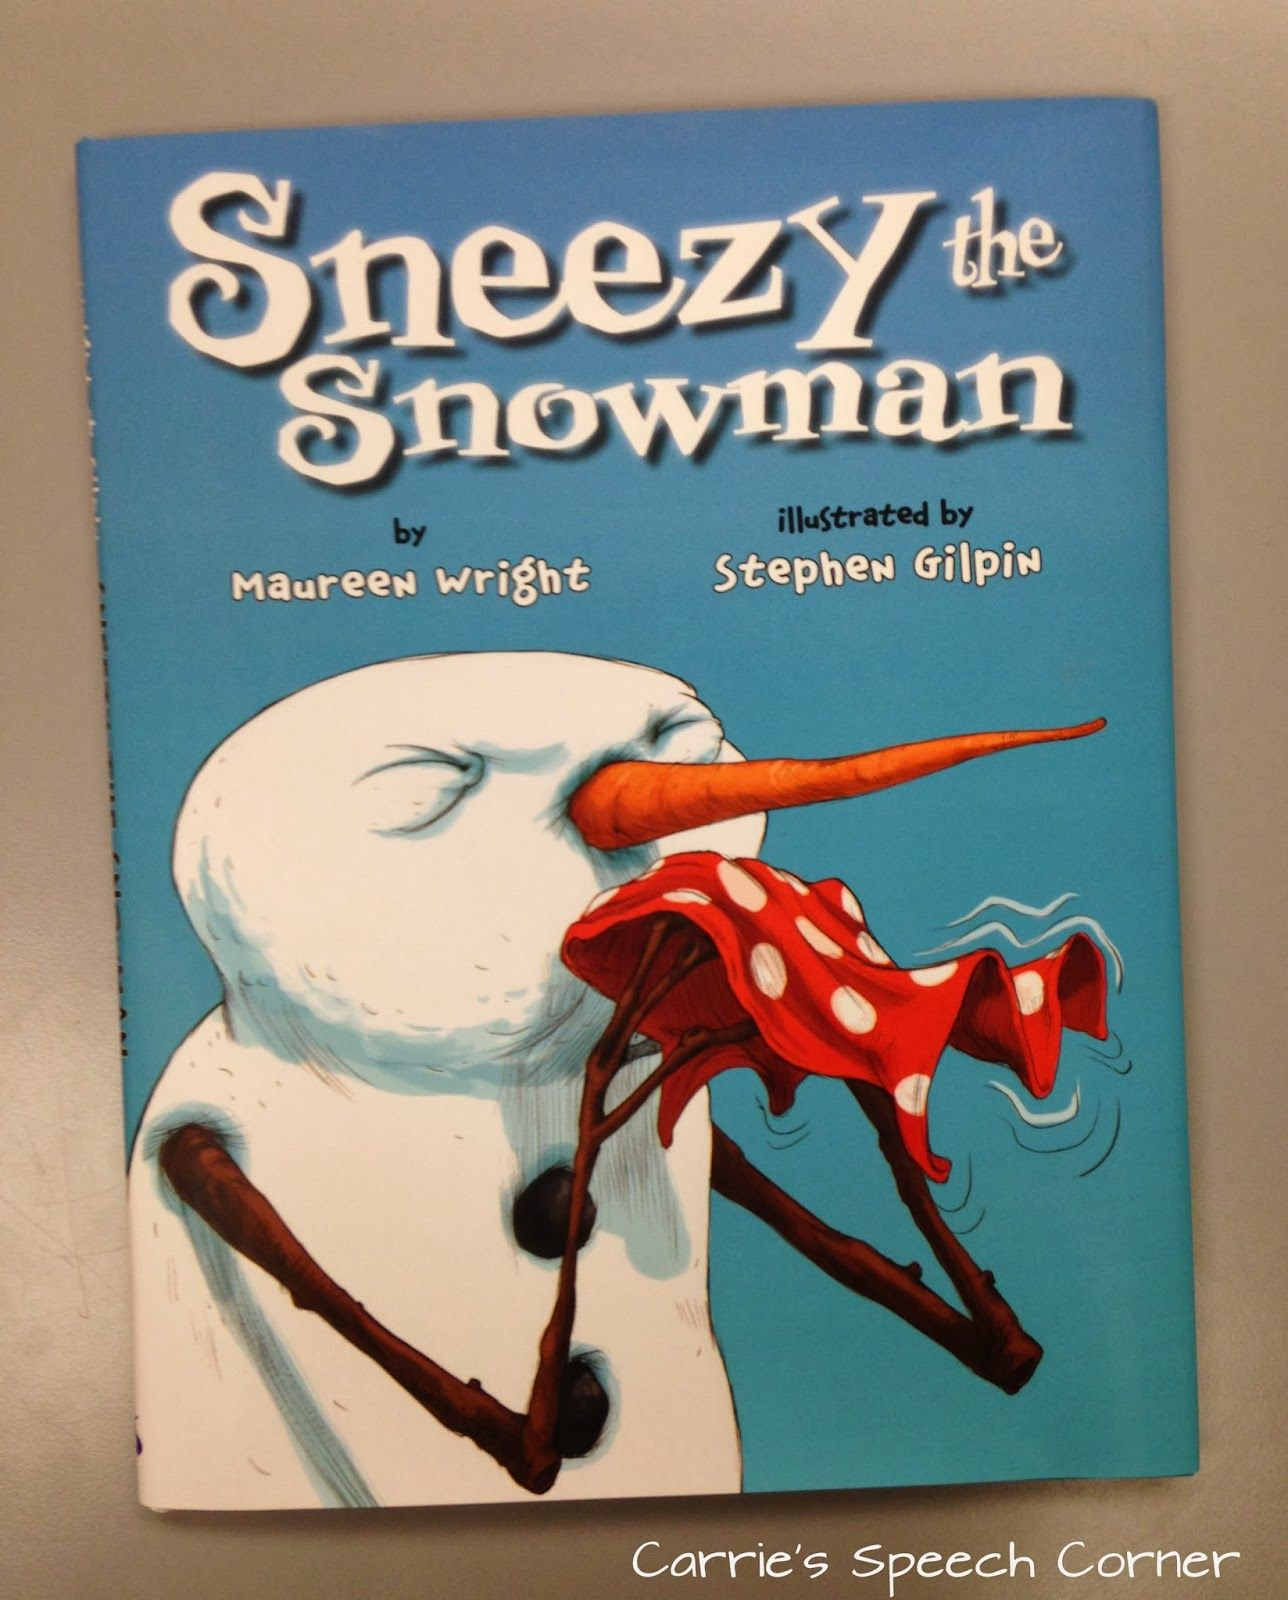 Carrie S Speech Corner Book Of The Week Sneezy The Snowman